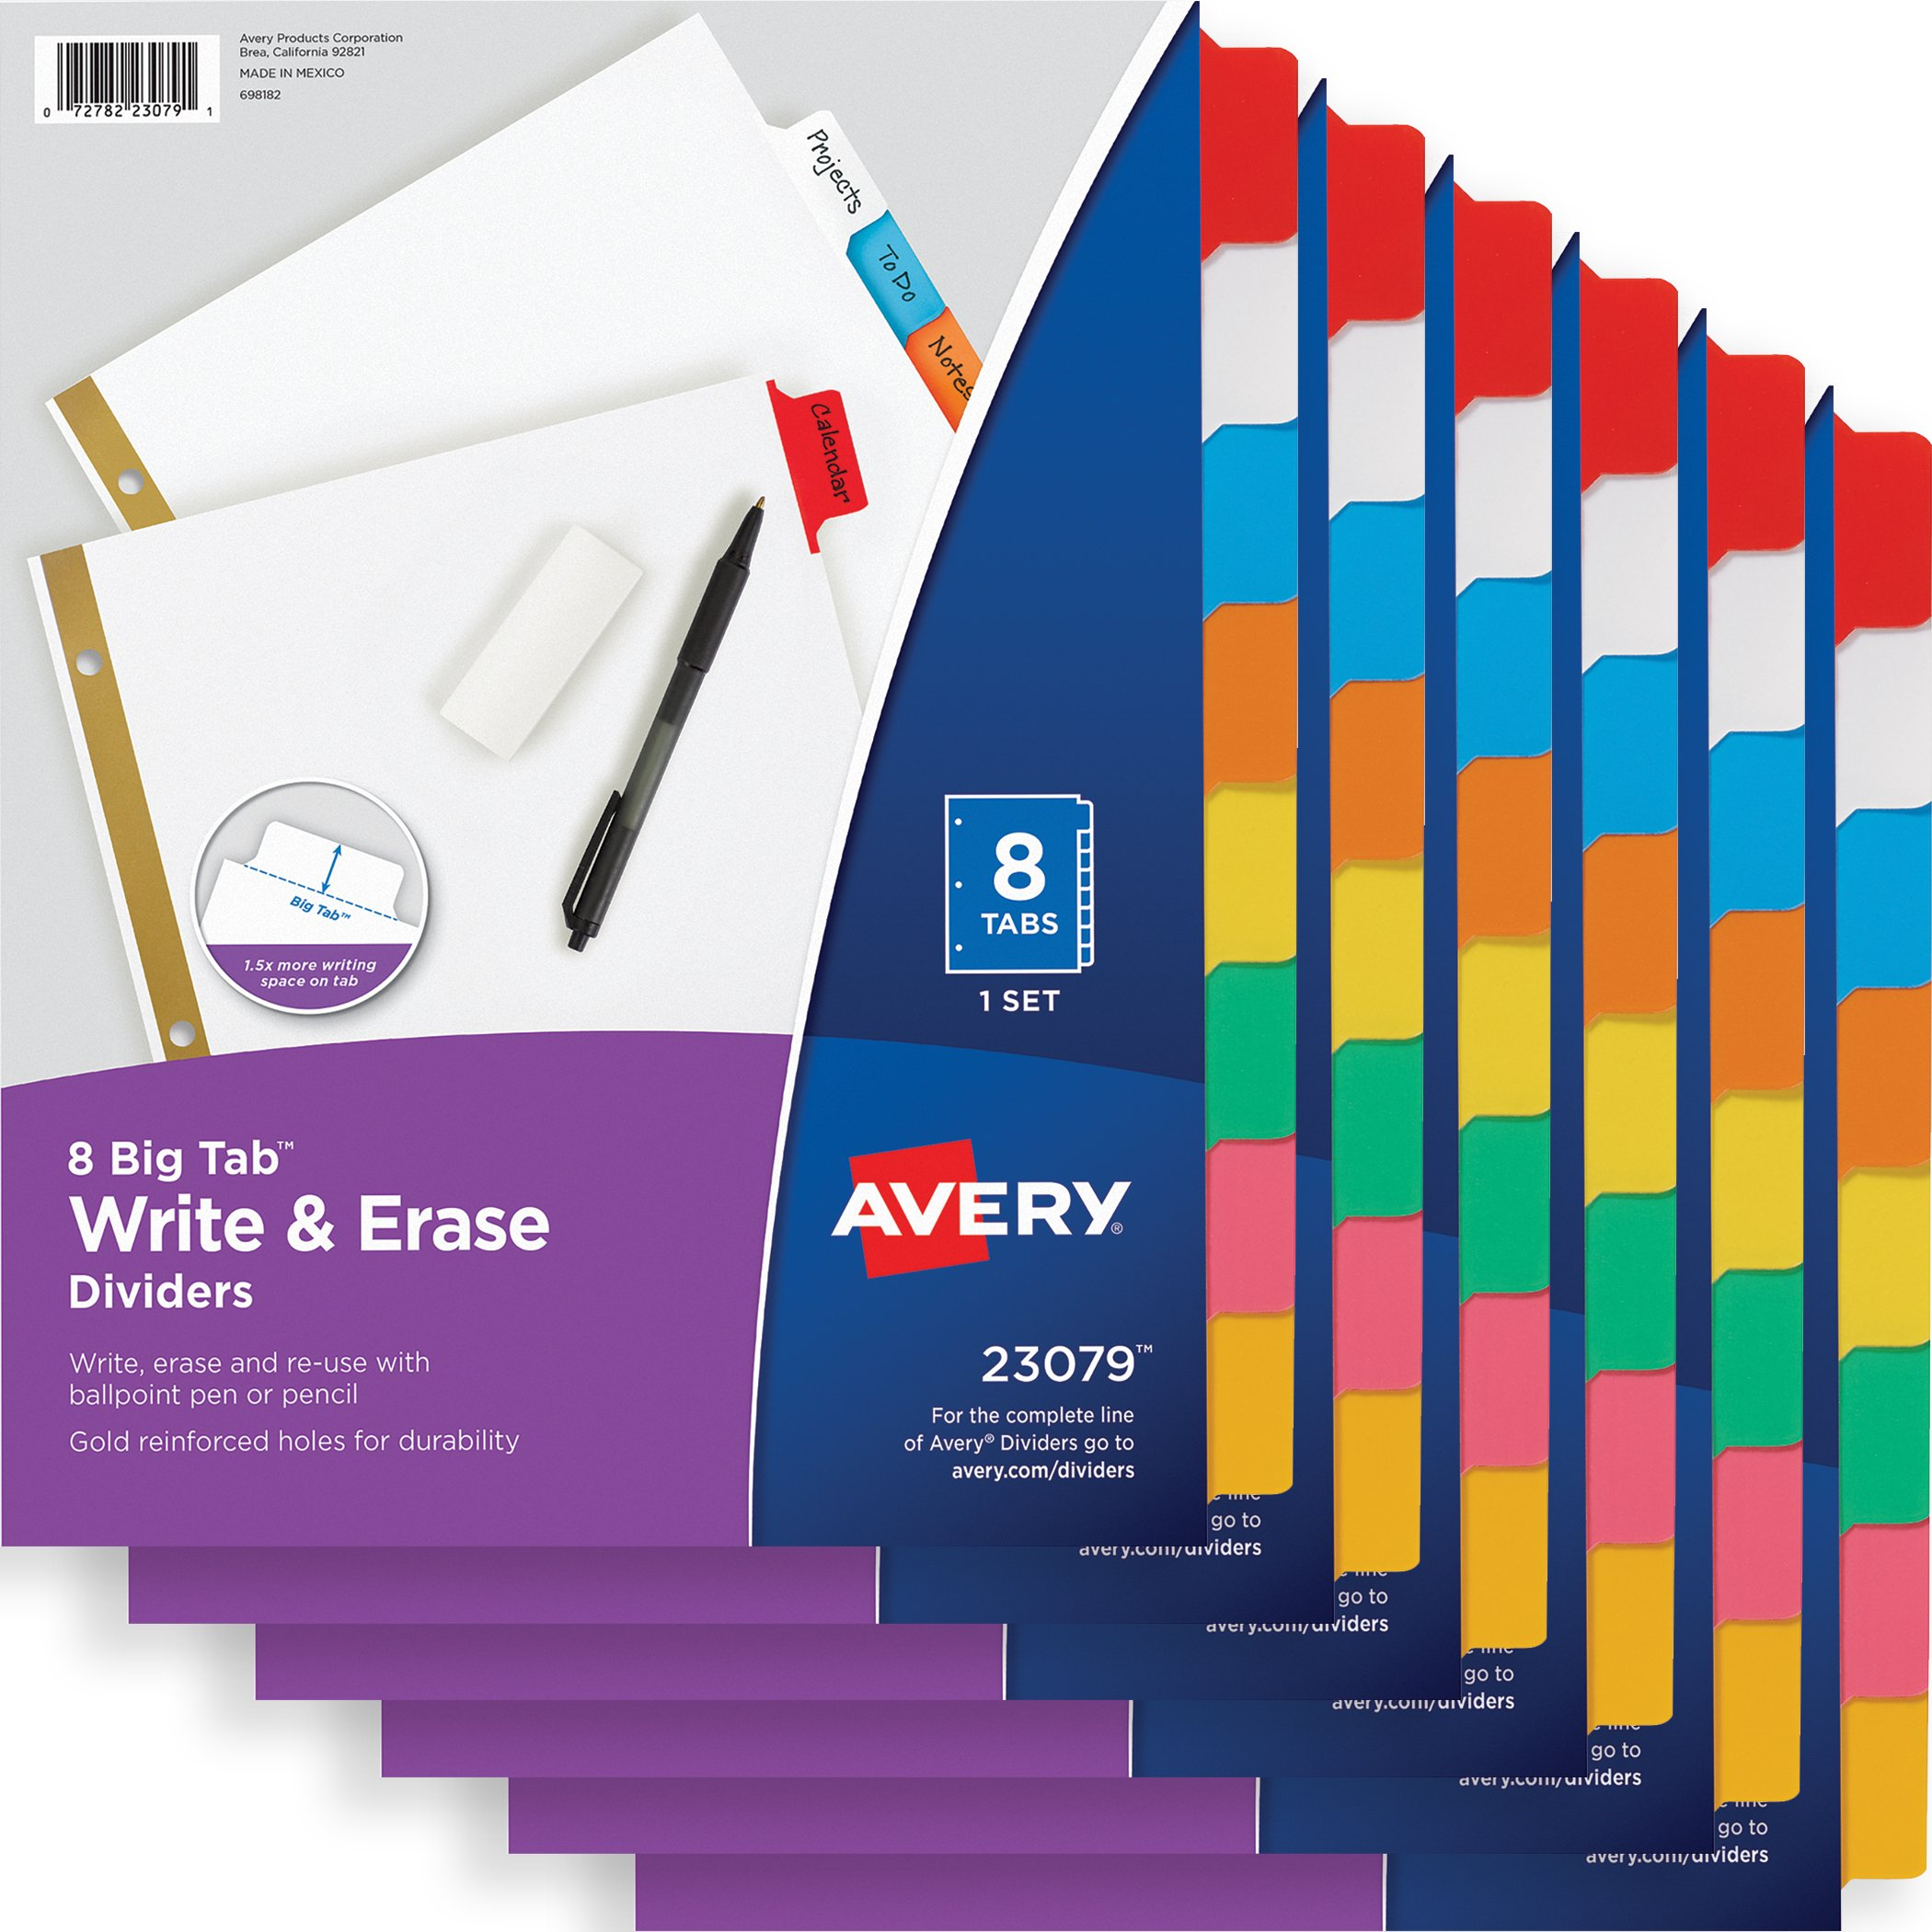 Avery Big Tab Write & Erase Dividers, 8-Tab Set, Multicolor, Multi Pack of 6 Sets (23079)